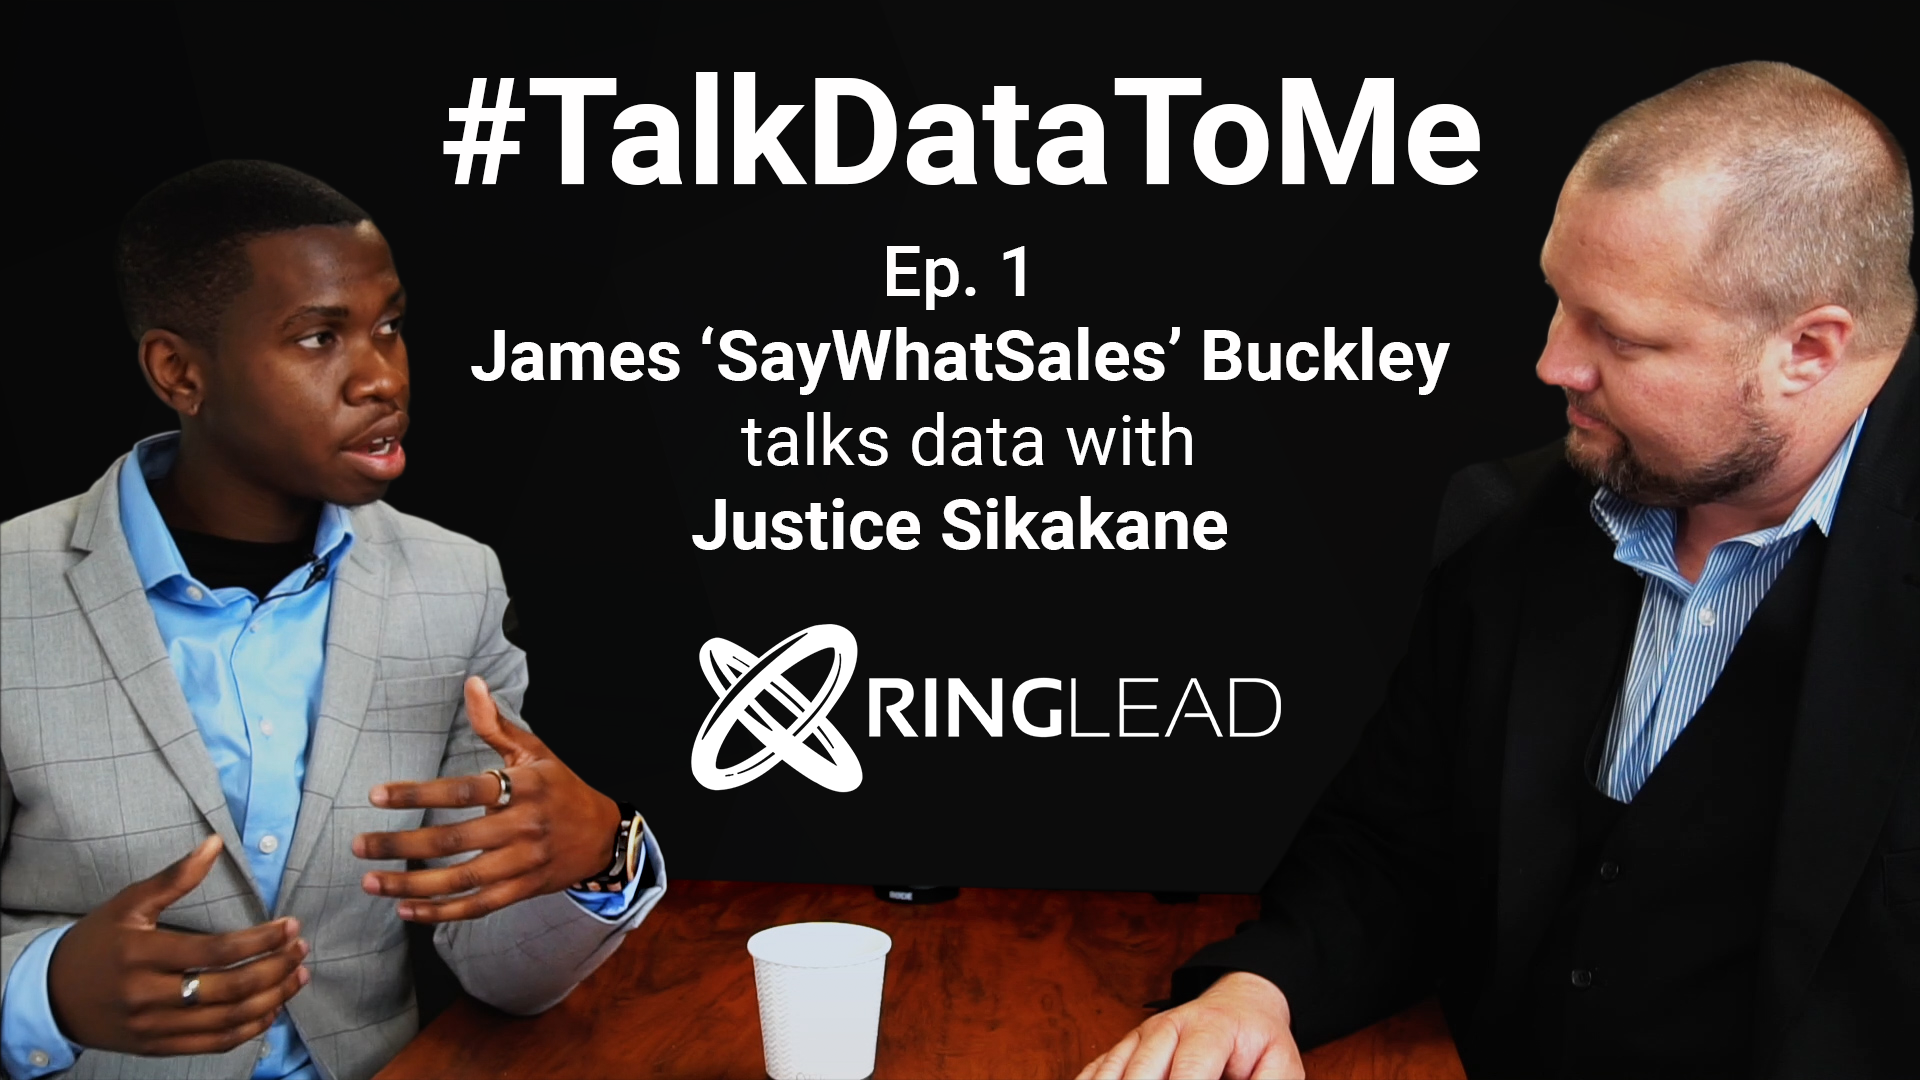 #TalkDataToMe Episode 1: James 'Saywhatsales' Buckley and Justice Sikakane Sr.